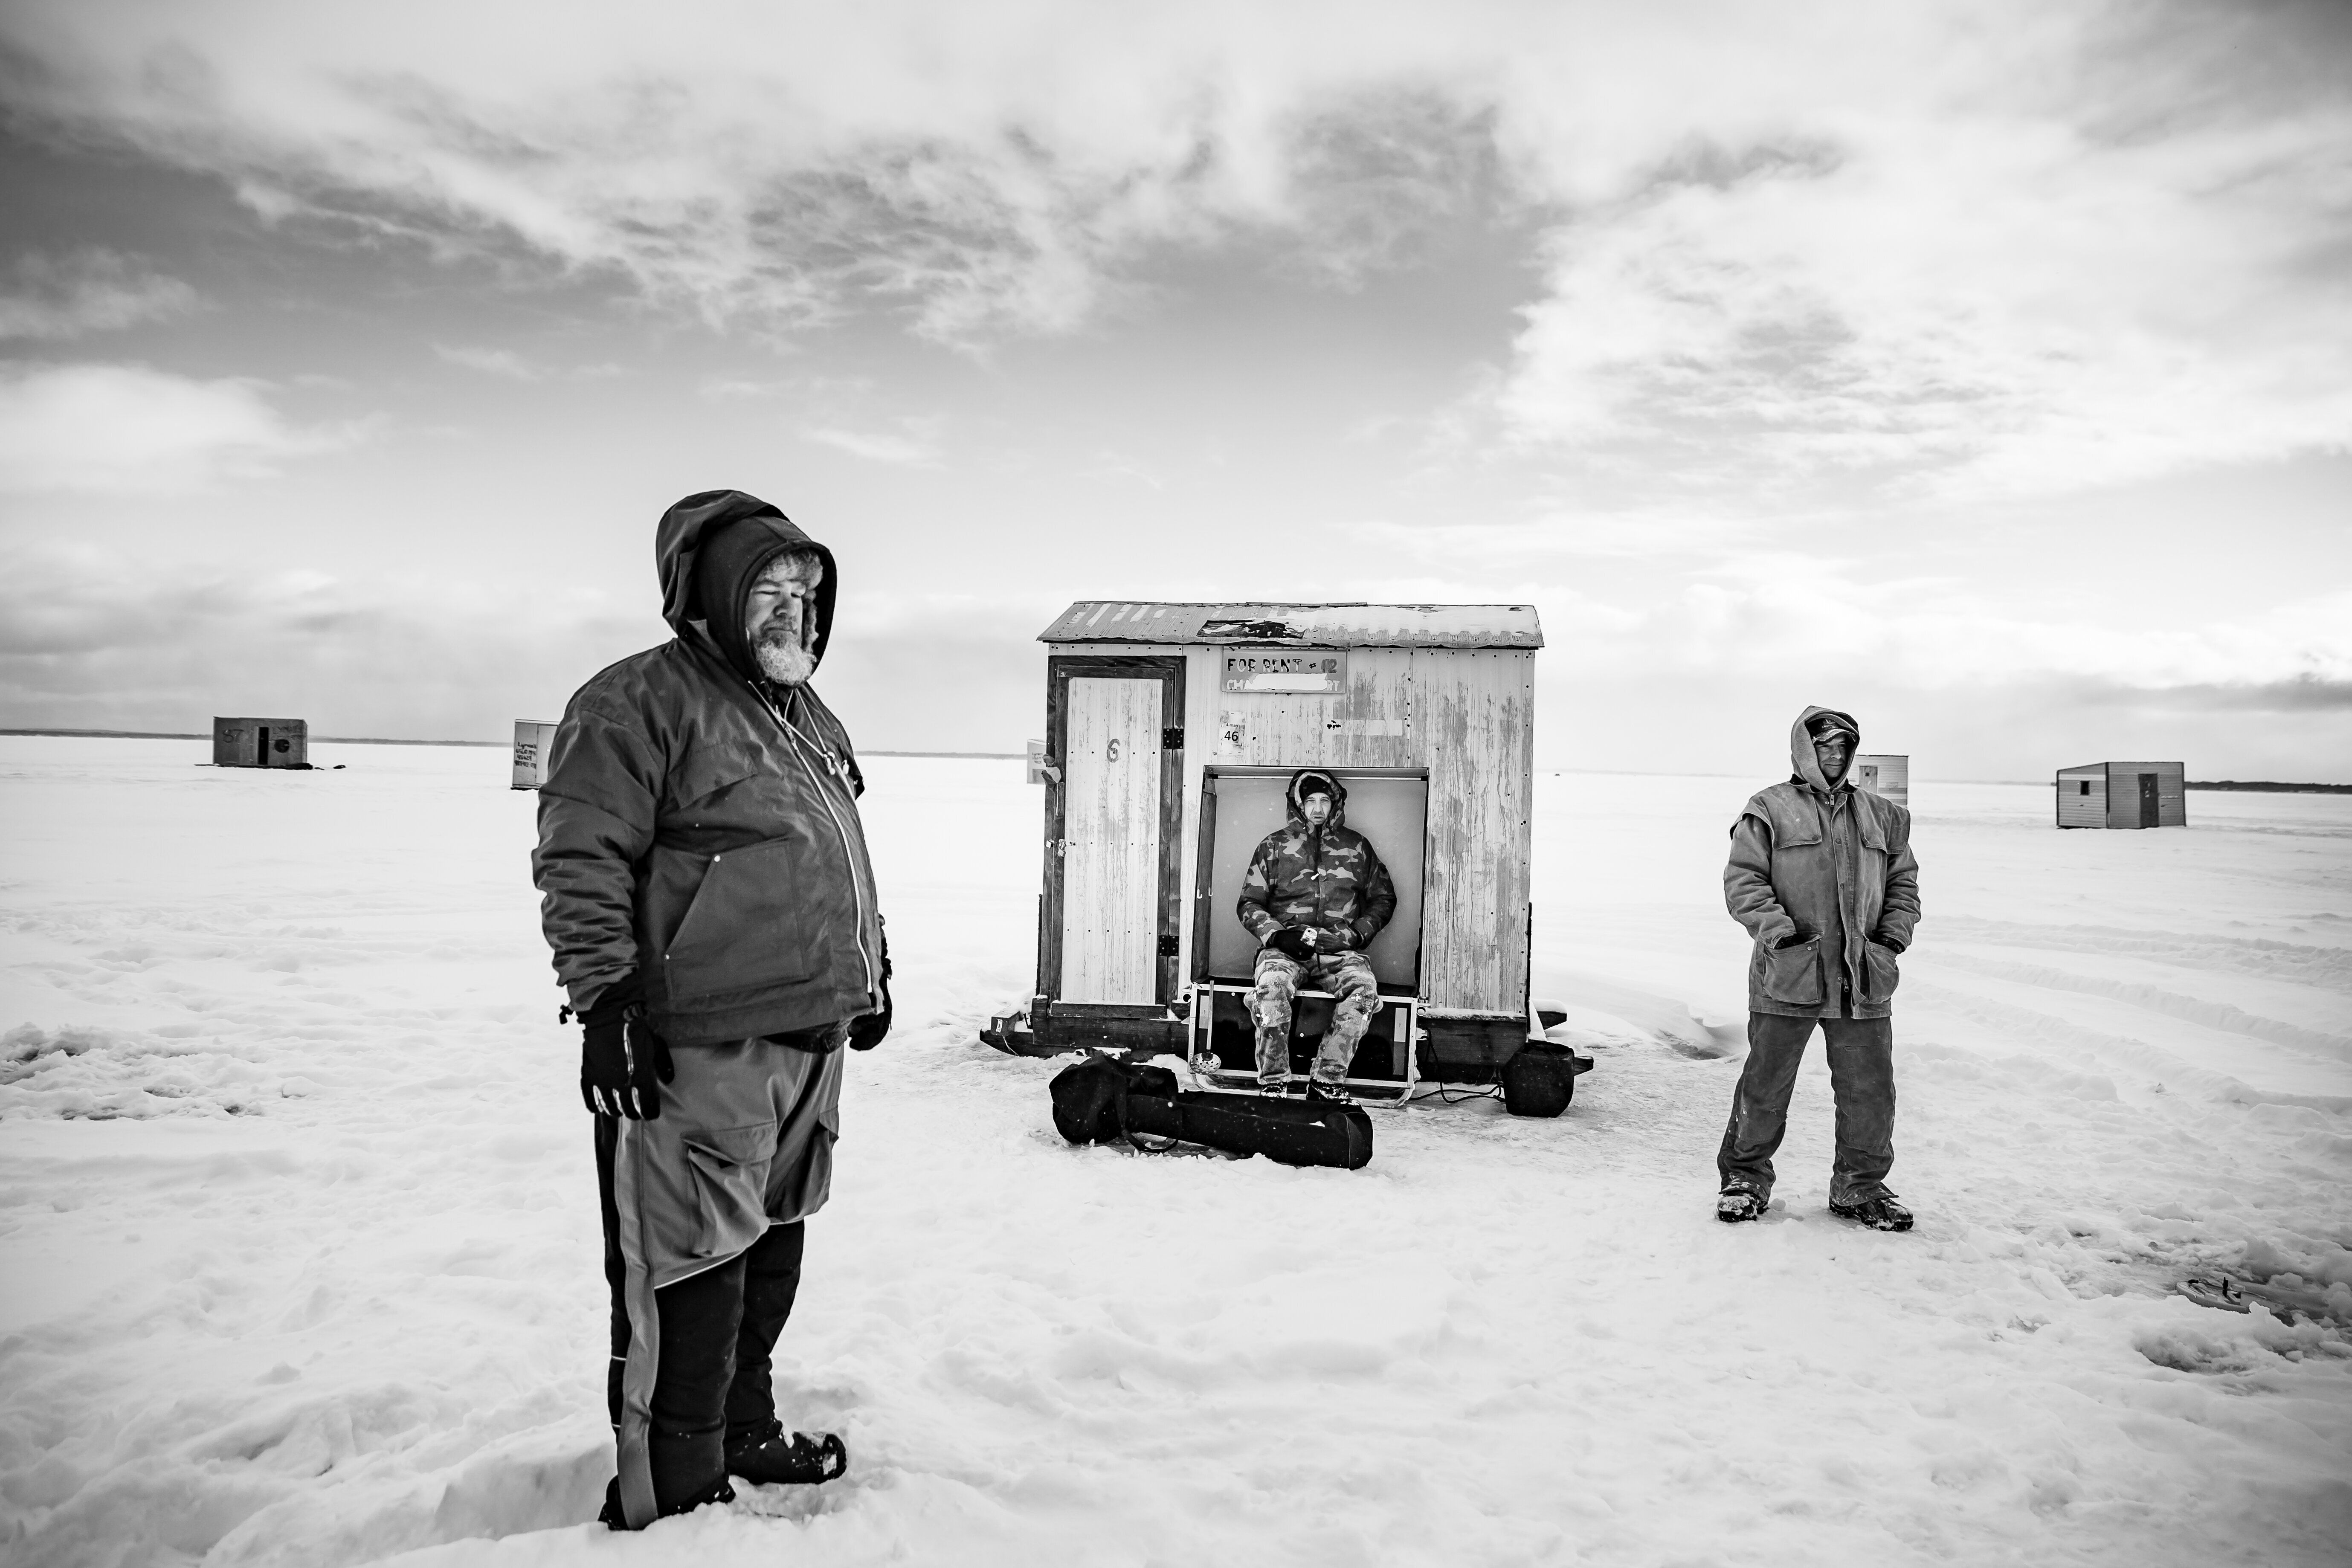 """Mike Joseph and his friends traveled 7.5 hours from Ohio to Houghton Lake in Michigan for ice fishing on Jan. 19. """"We d"""